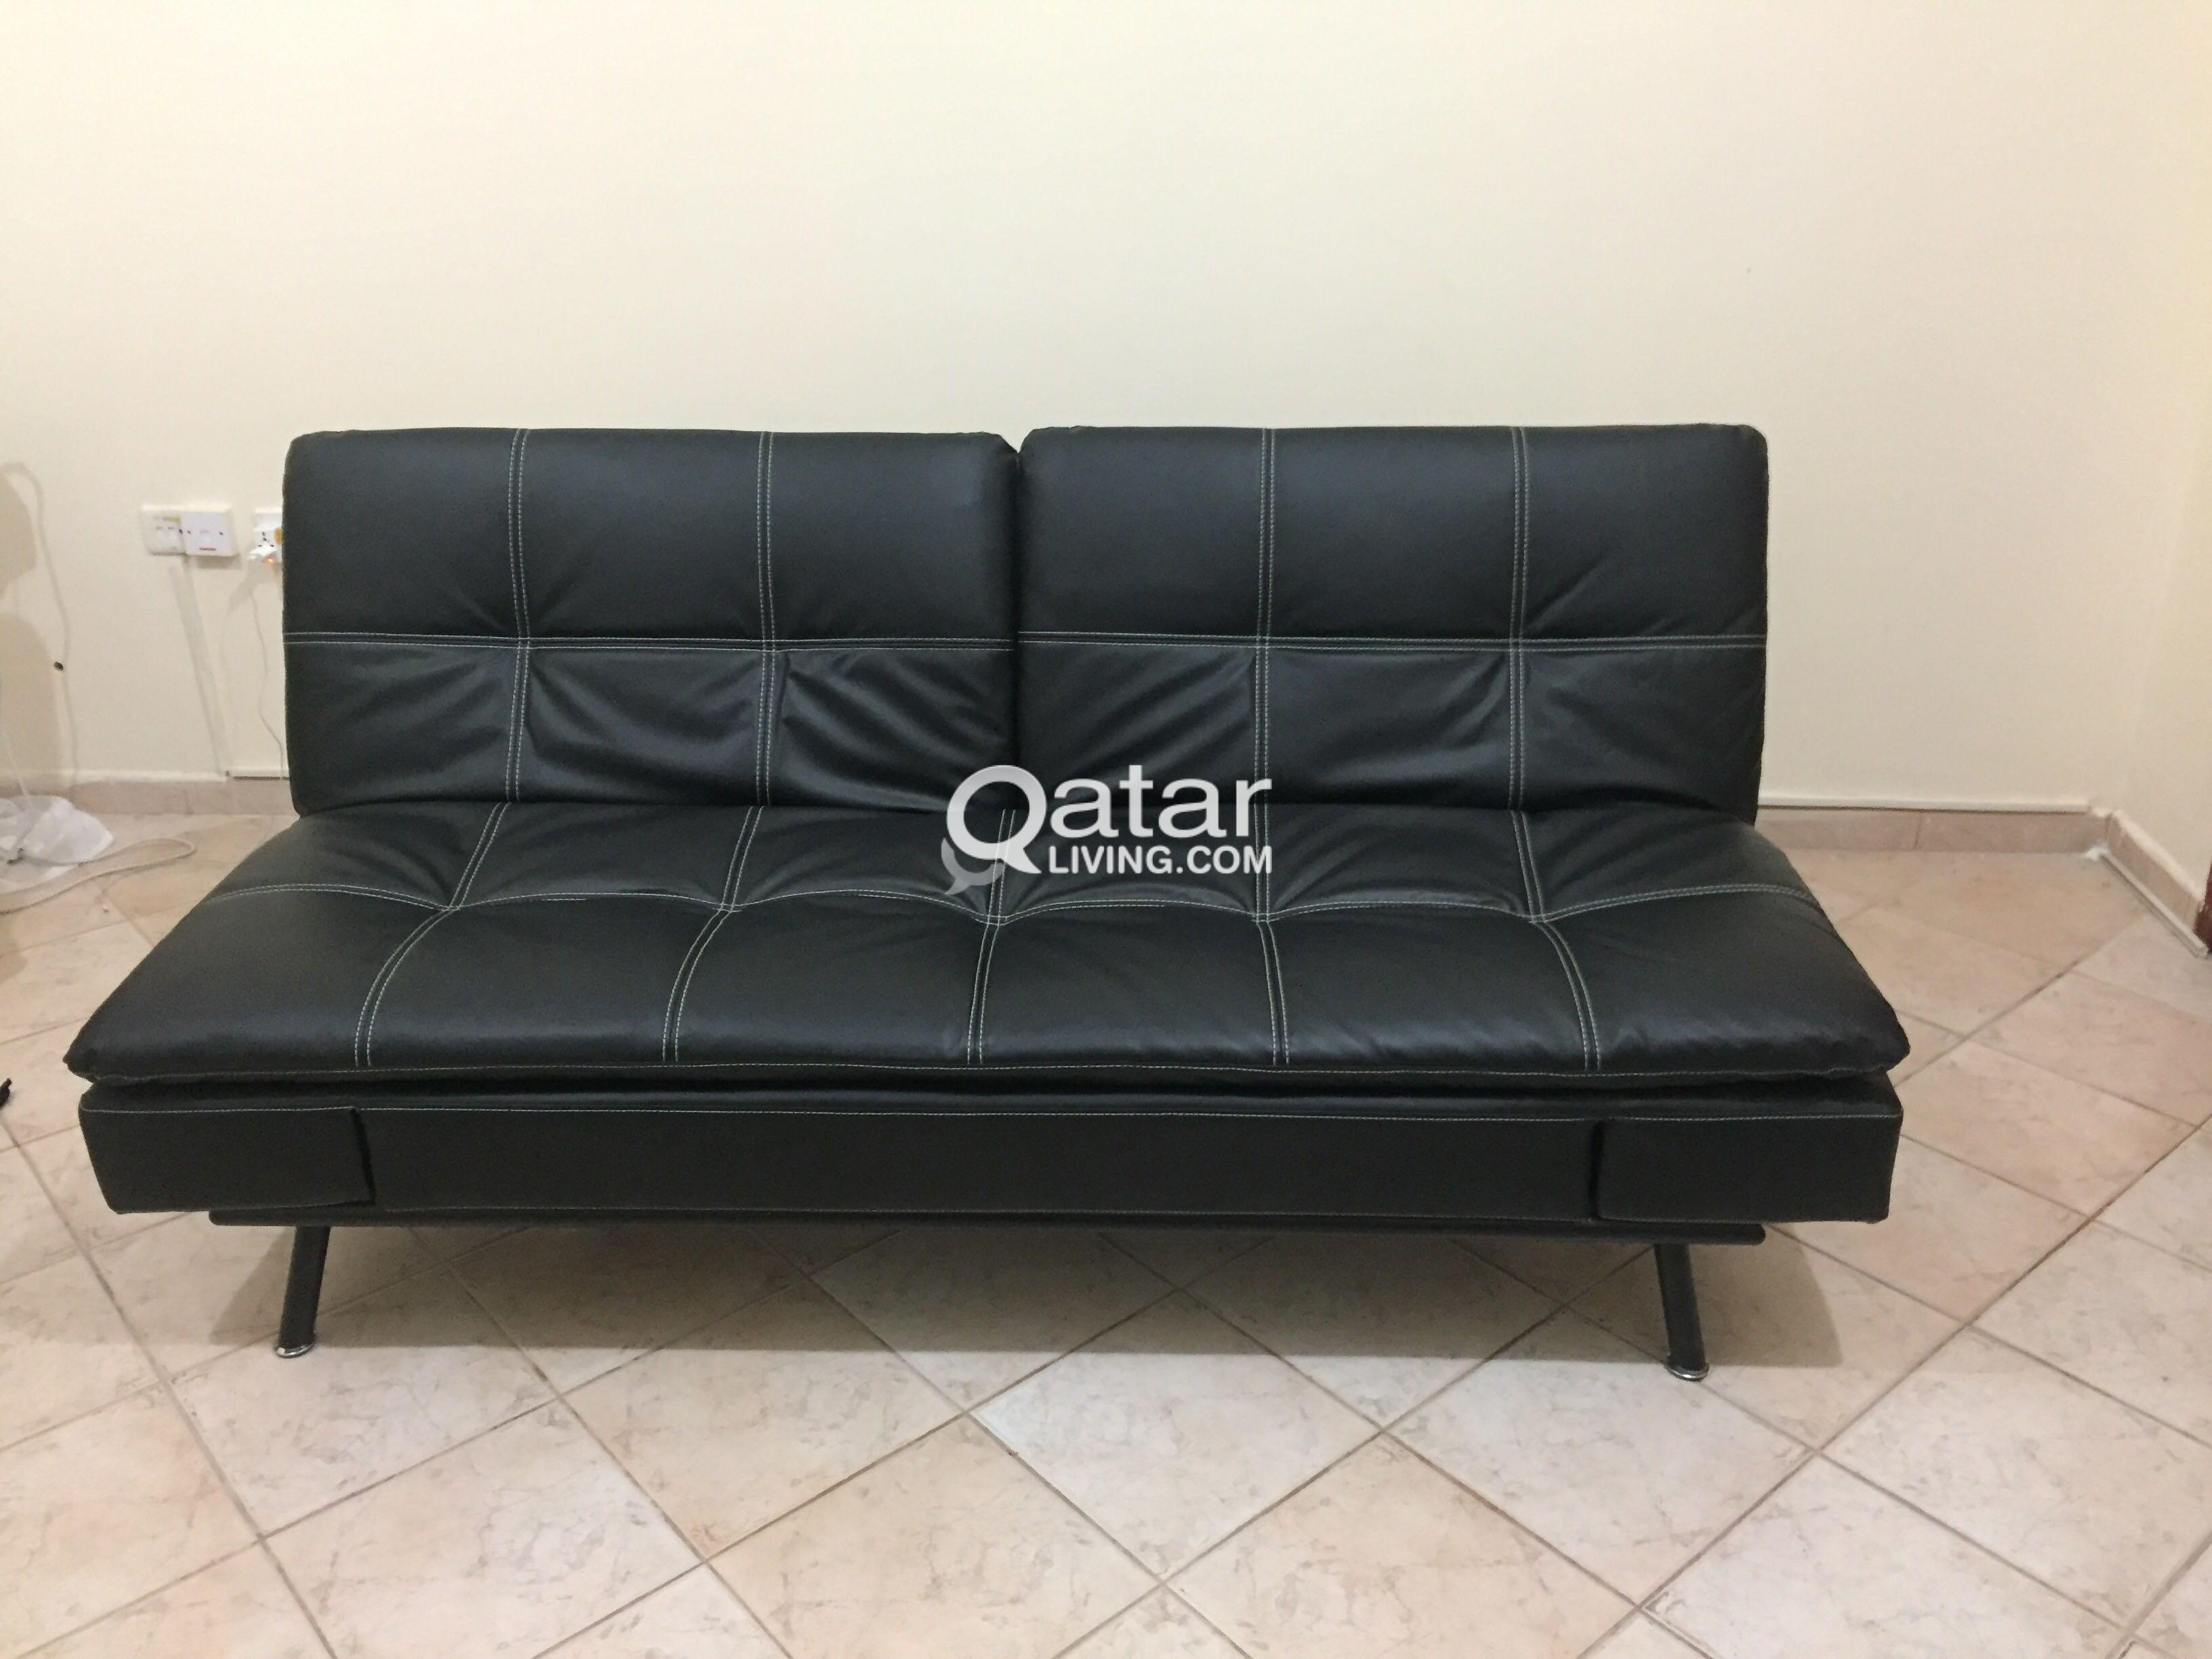 Sofa r us great condition sofa set from home r us used for Sofa bed qatar living